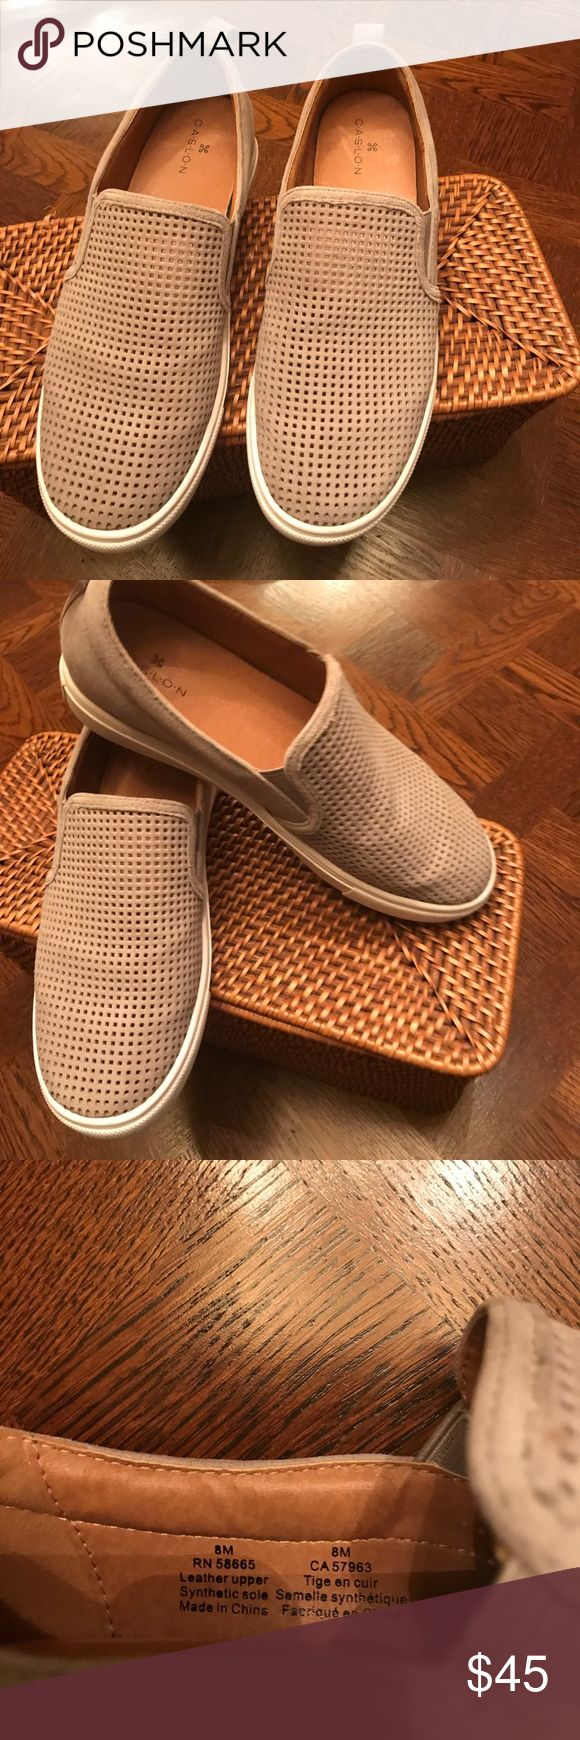 Caslon slip on mash tennis shoes Super comfy ❄️slip on suede perforated mesh gray tennis shoe Caslon Shoes Sneakers #tennisshoes